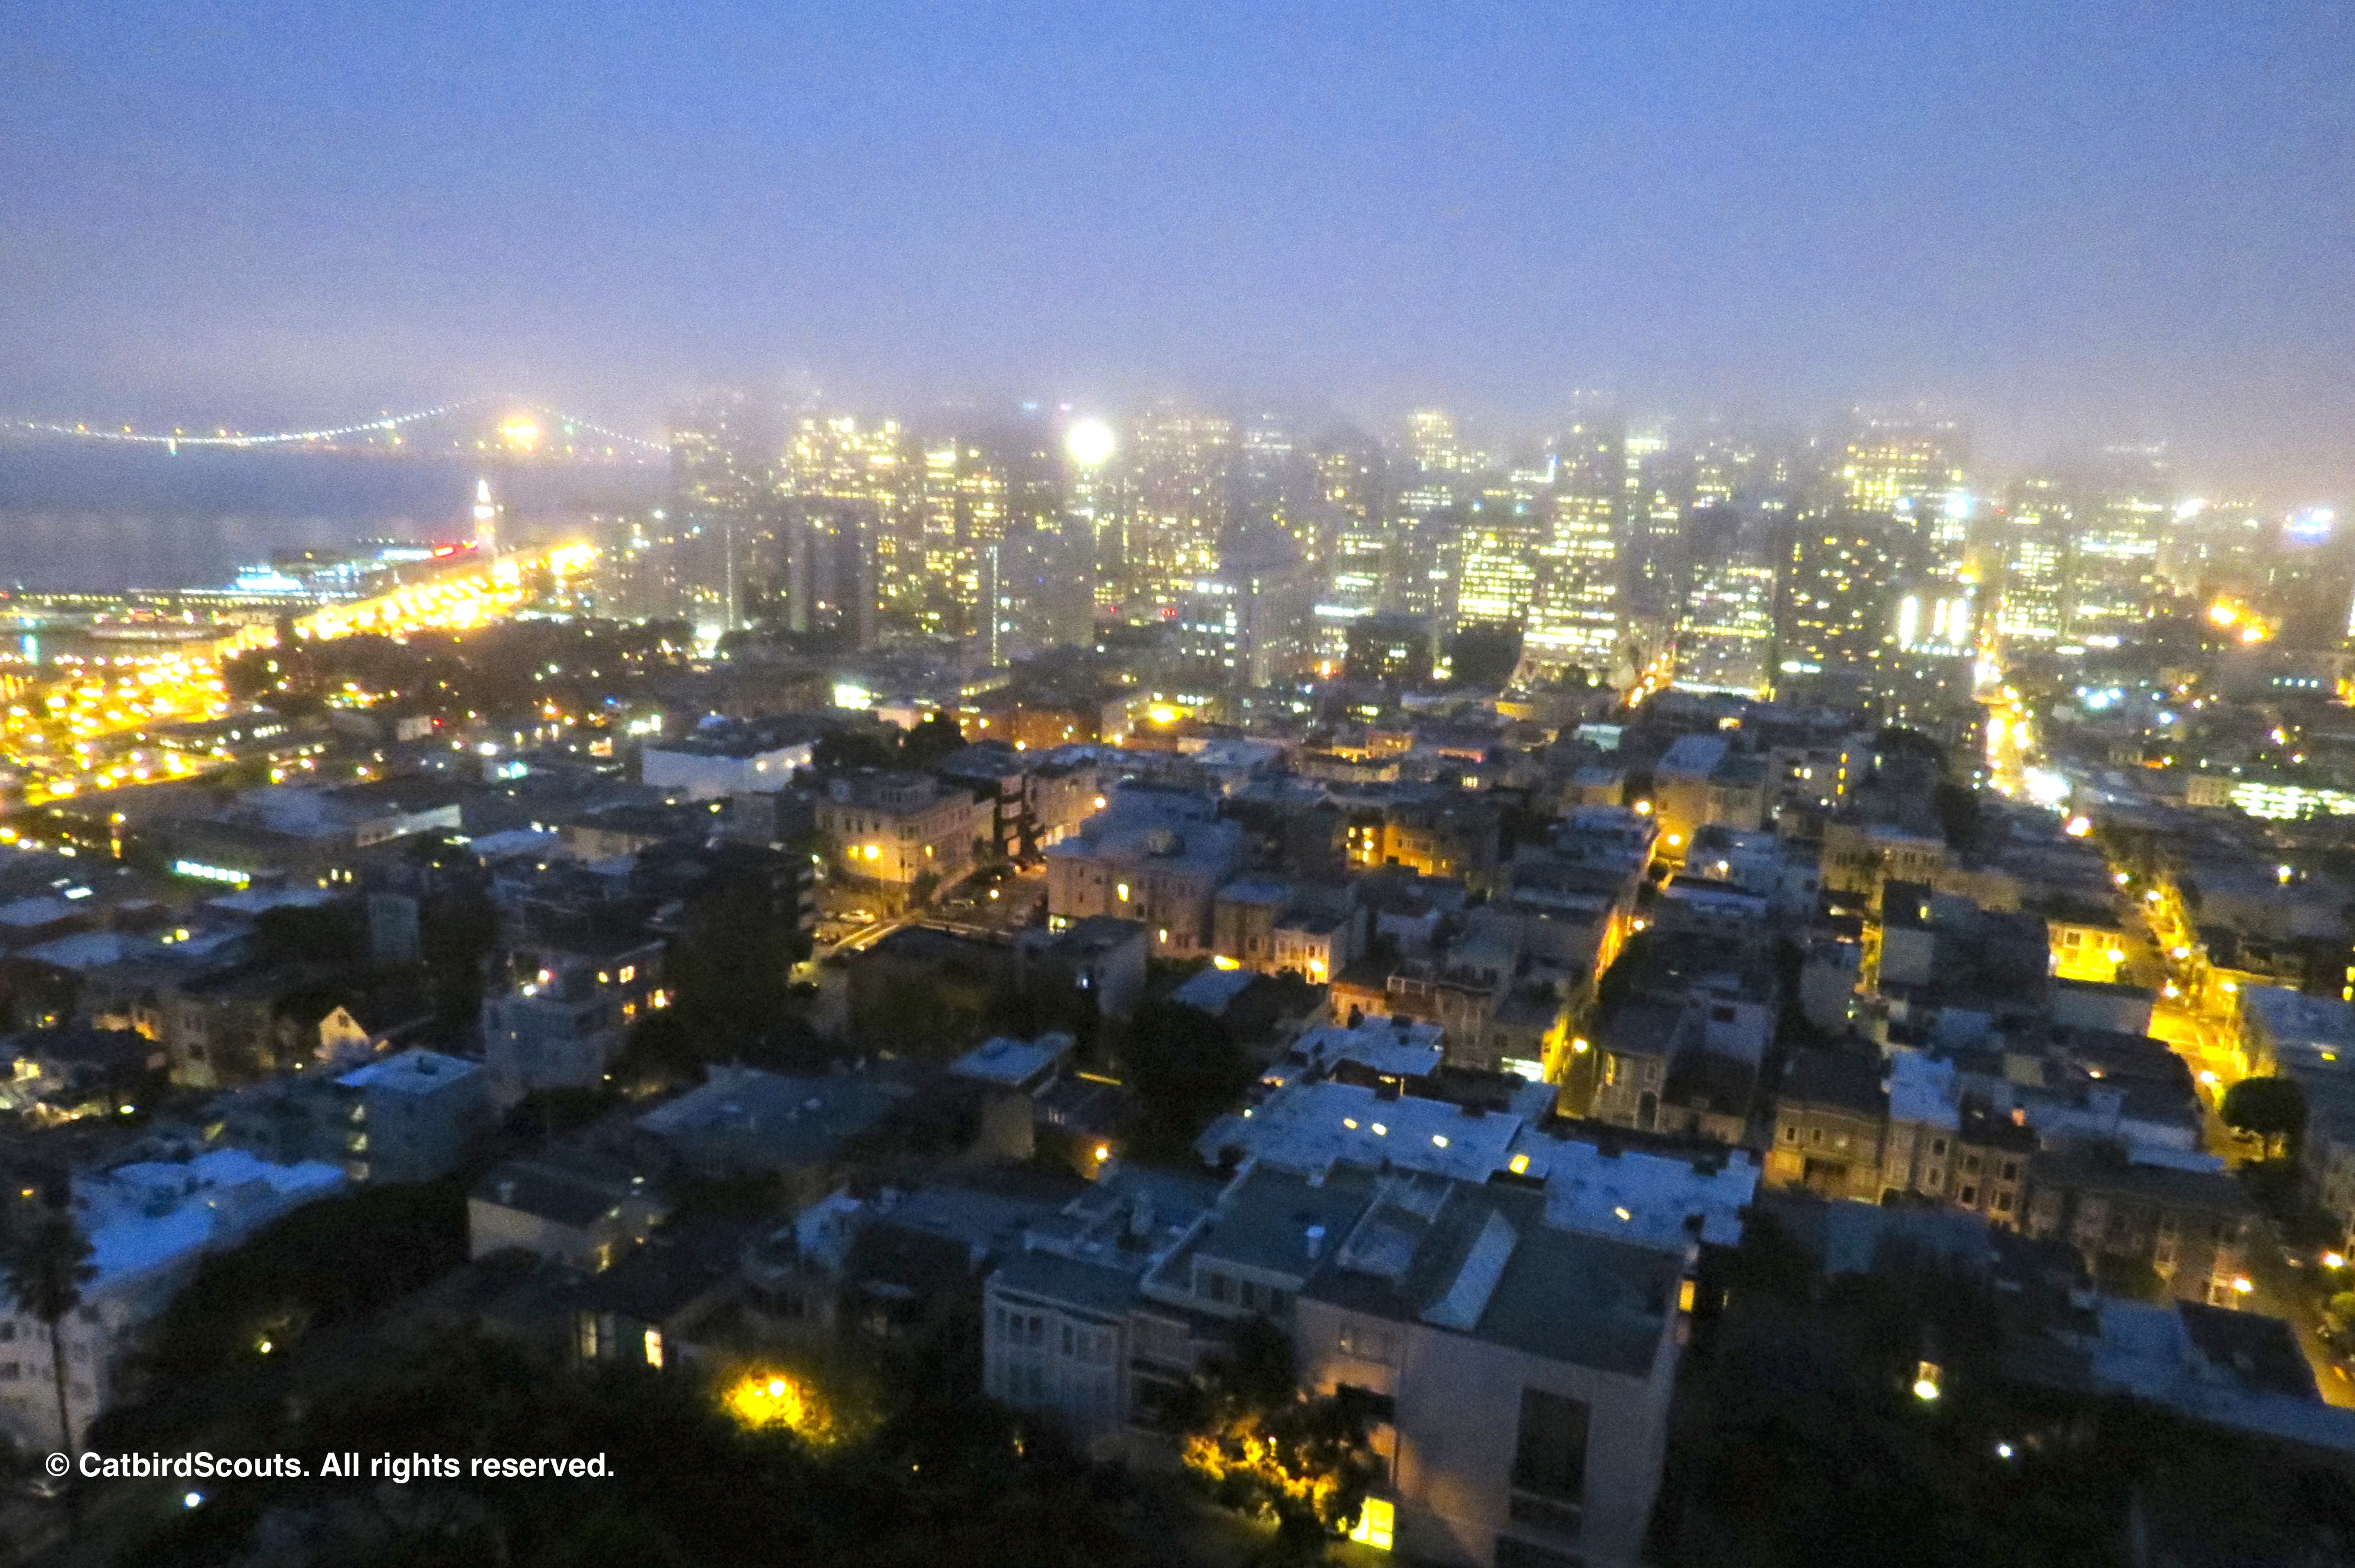 SF-NightimeView-Catbird-Scouts